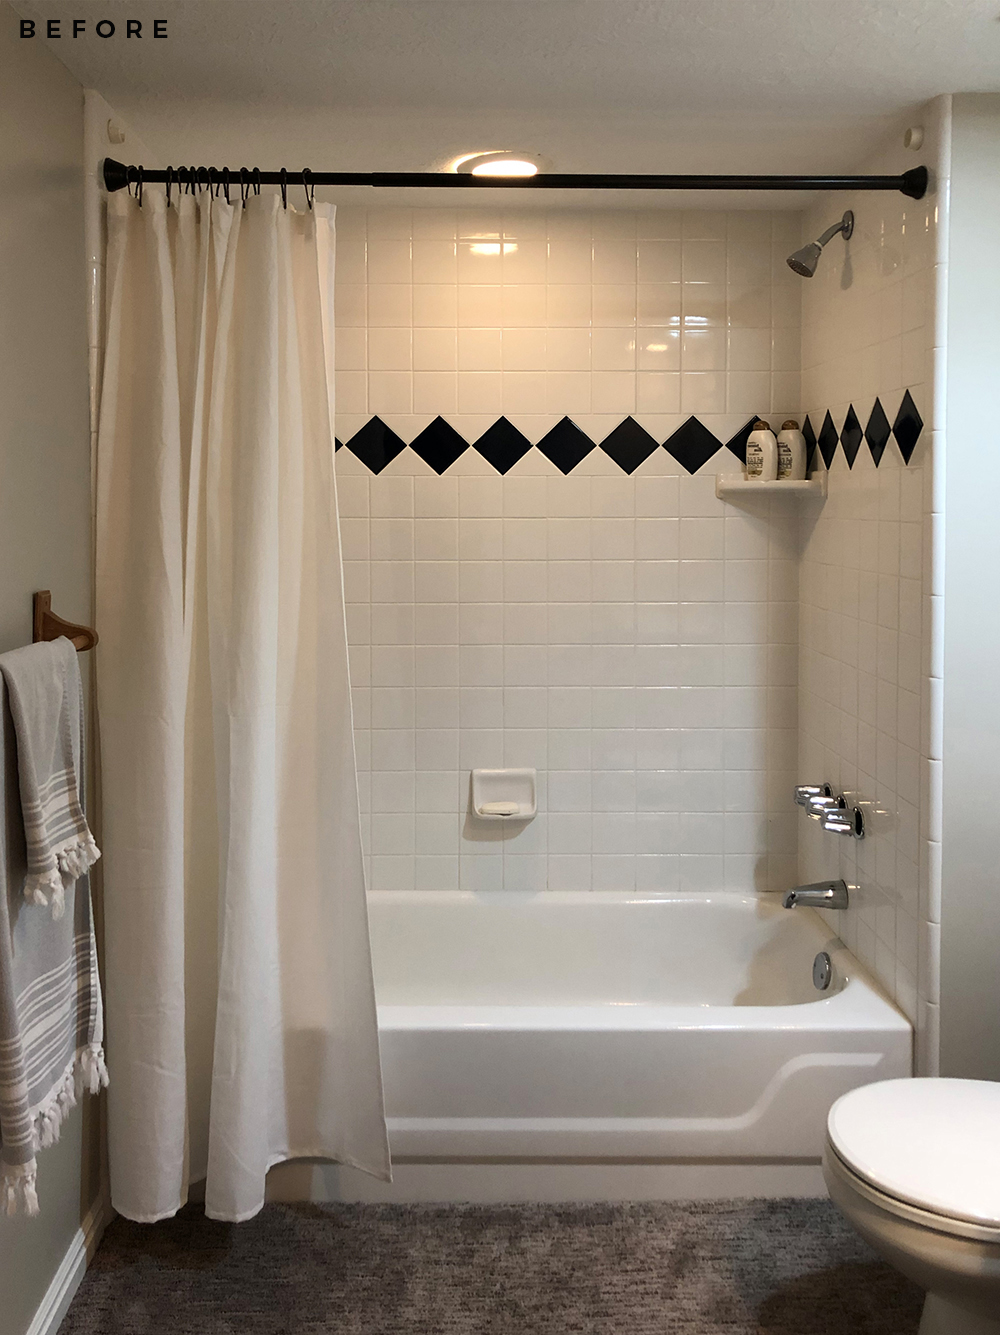 Basement Bathroom Reveal - roomfortuesday.com